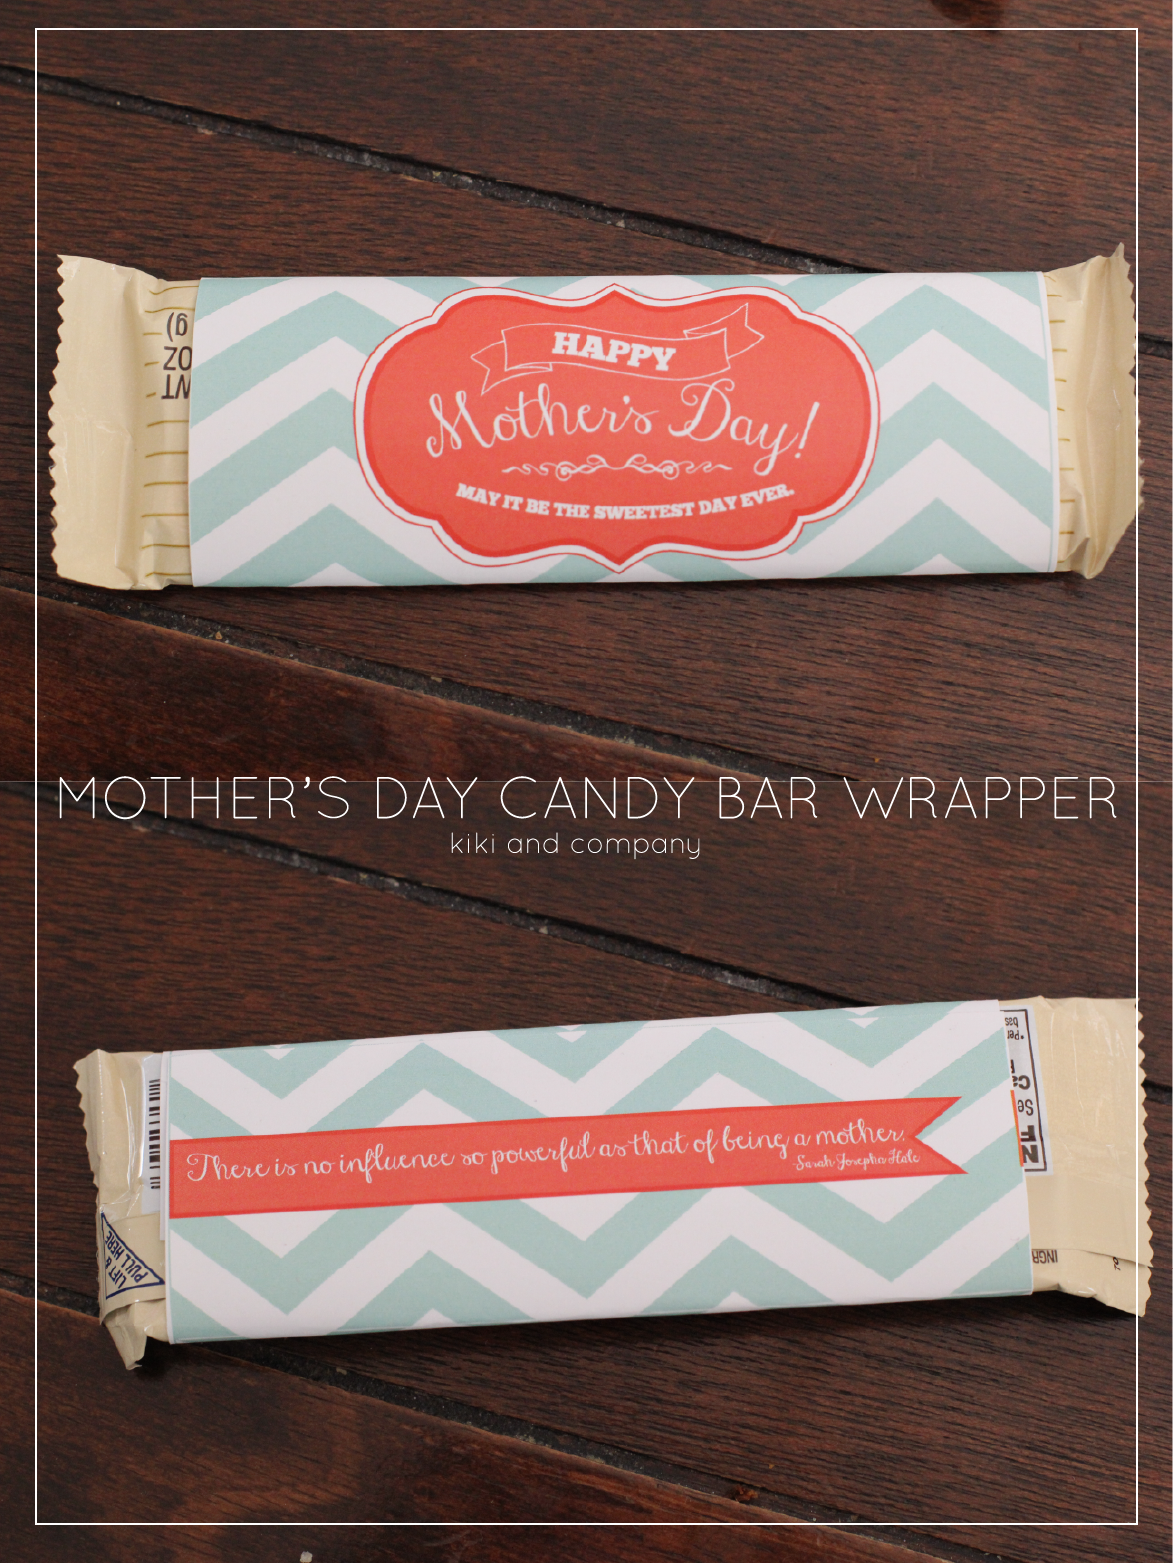 Mothers Day Candy Bar Wrapper by Kiki & Company